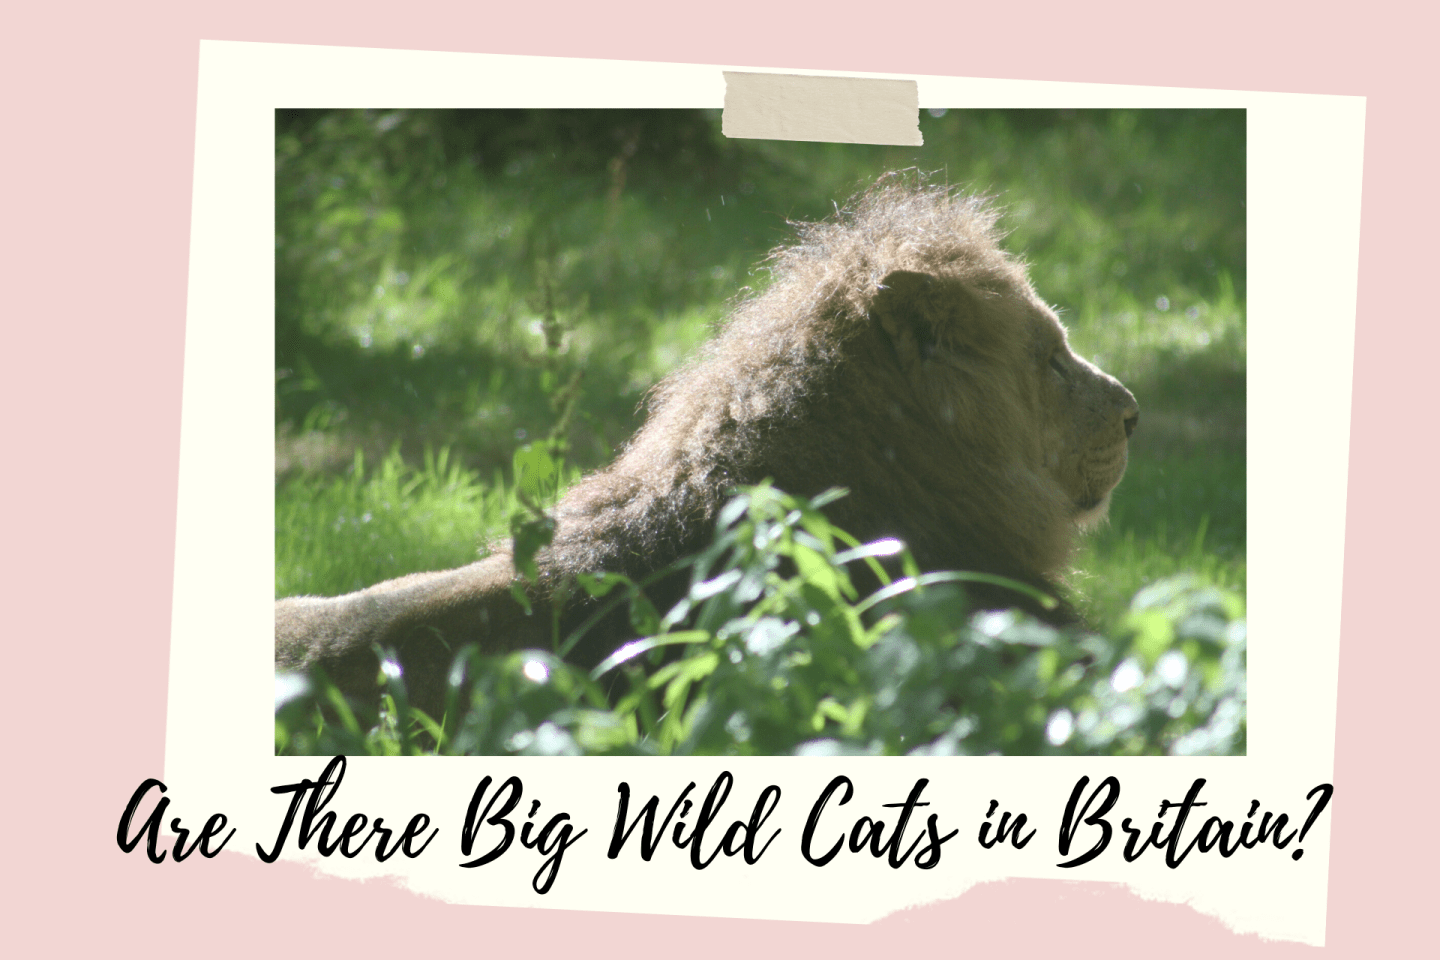 Are There Big Wild Cats in Britain?